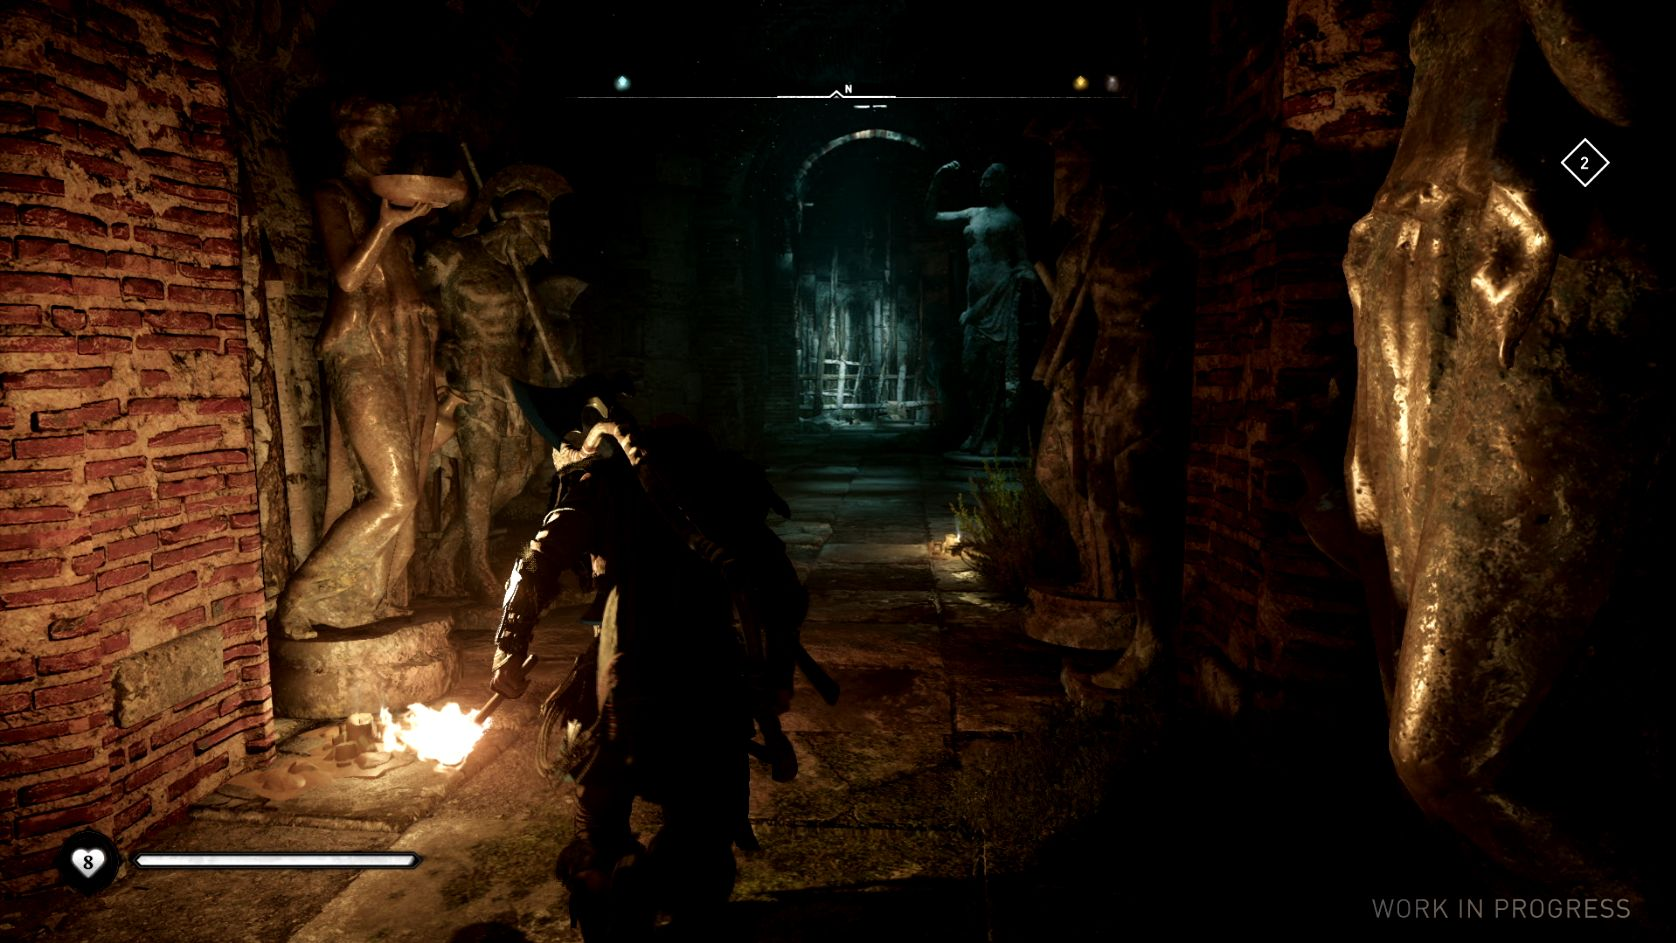 A screenshot of Eivor exploring a creepy underground tunnel